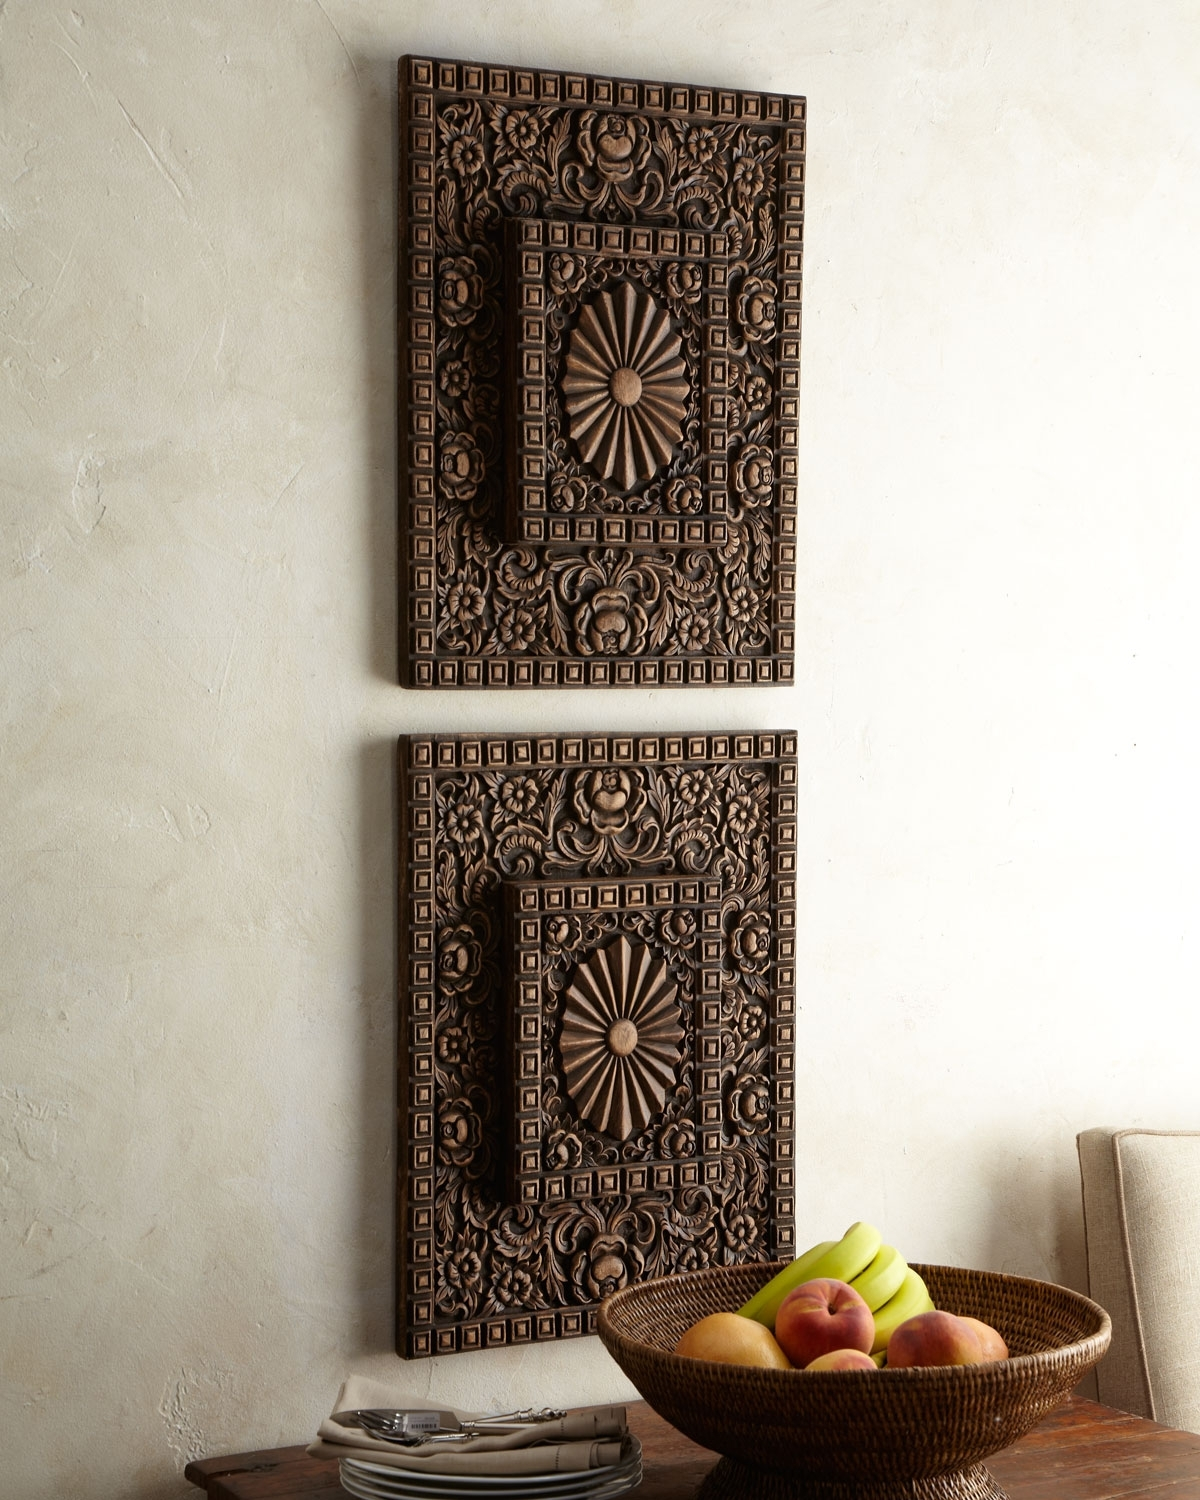 Home Decor Ideas – Wall Art Throughout Fretwork Wall Art (Gallery 12 of 15)